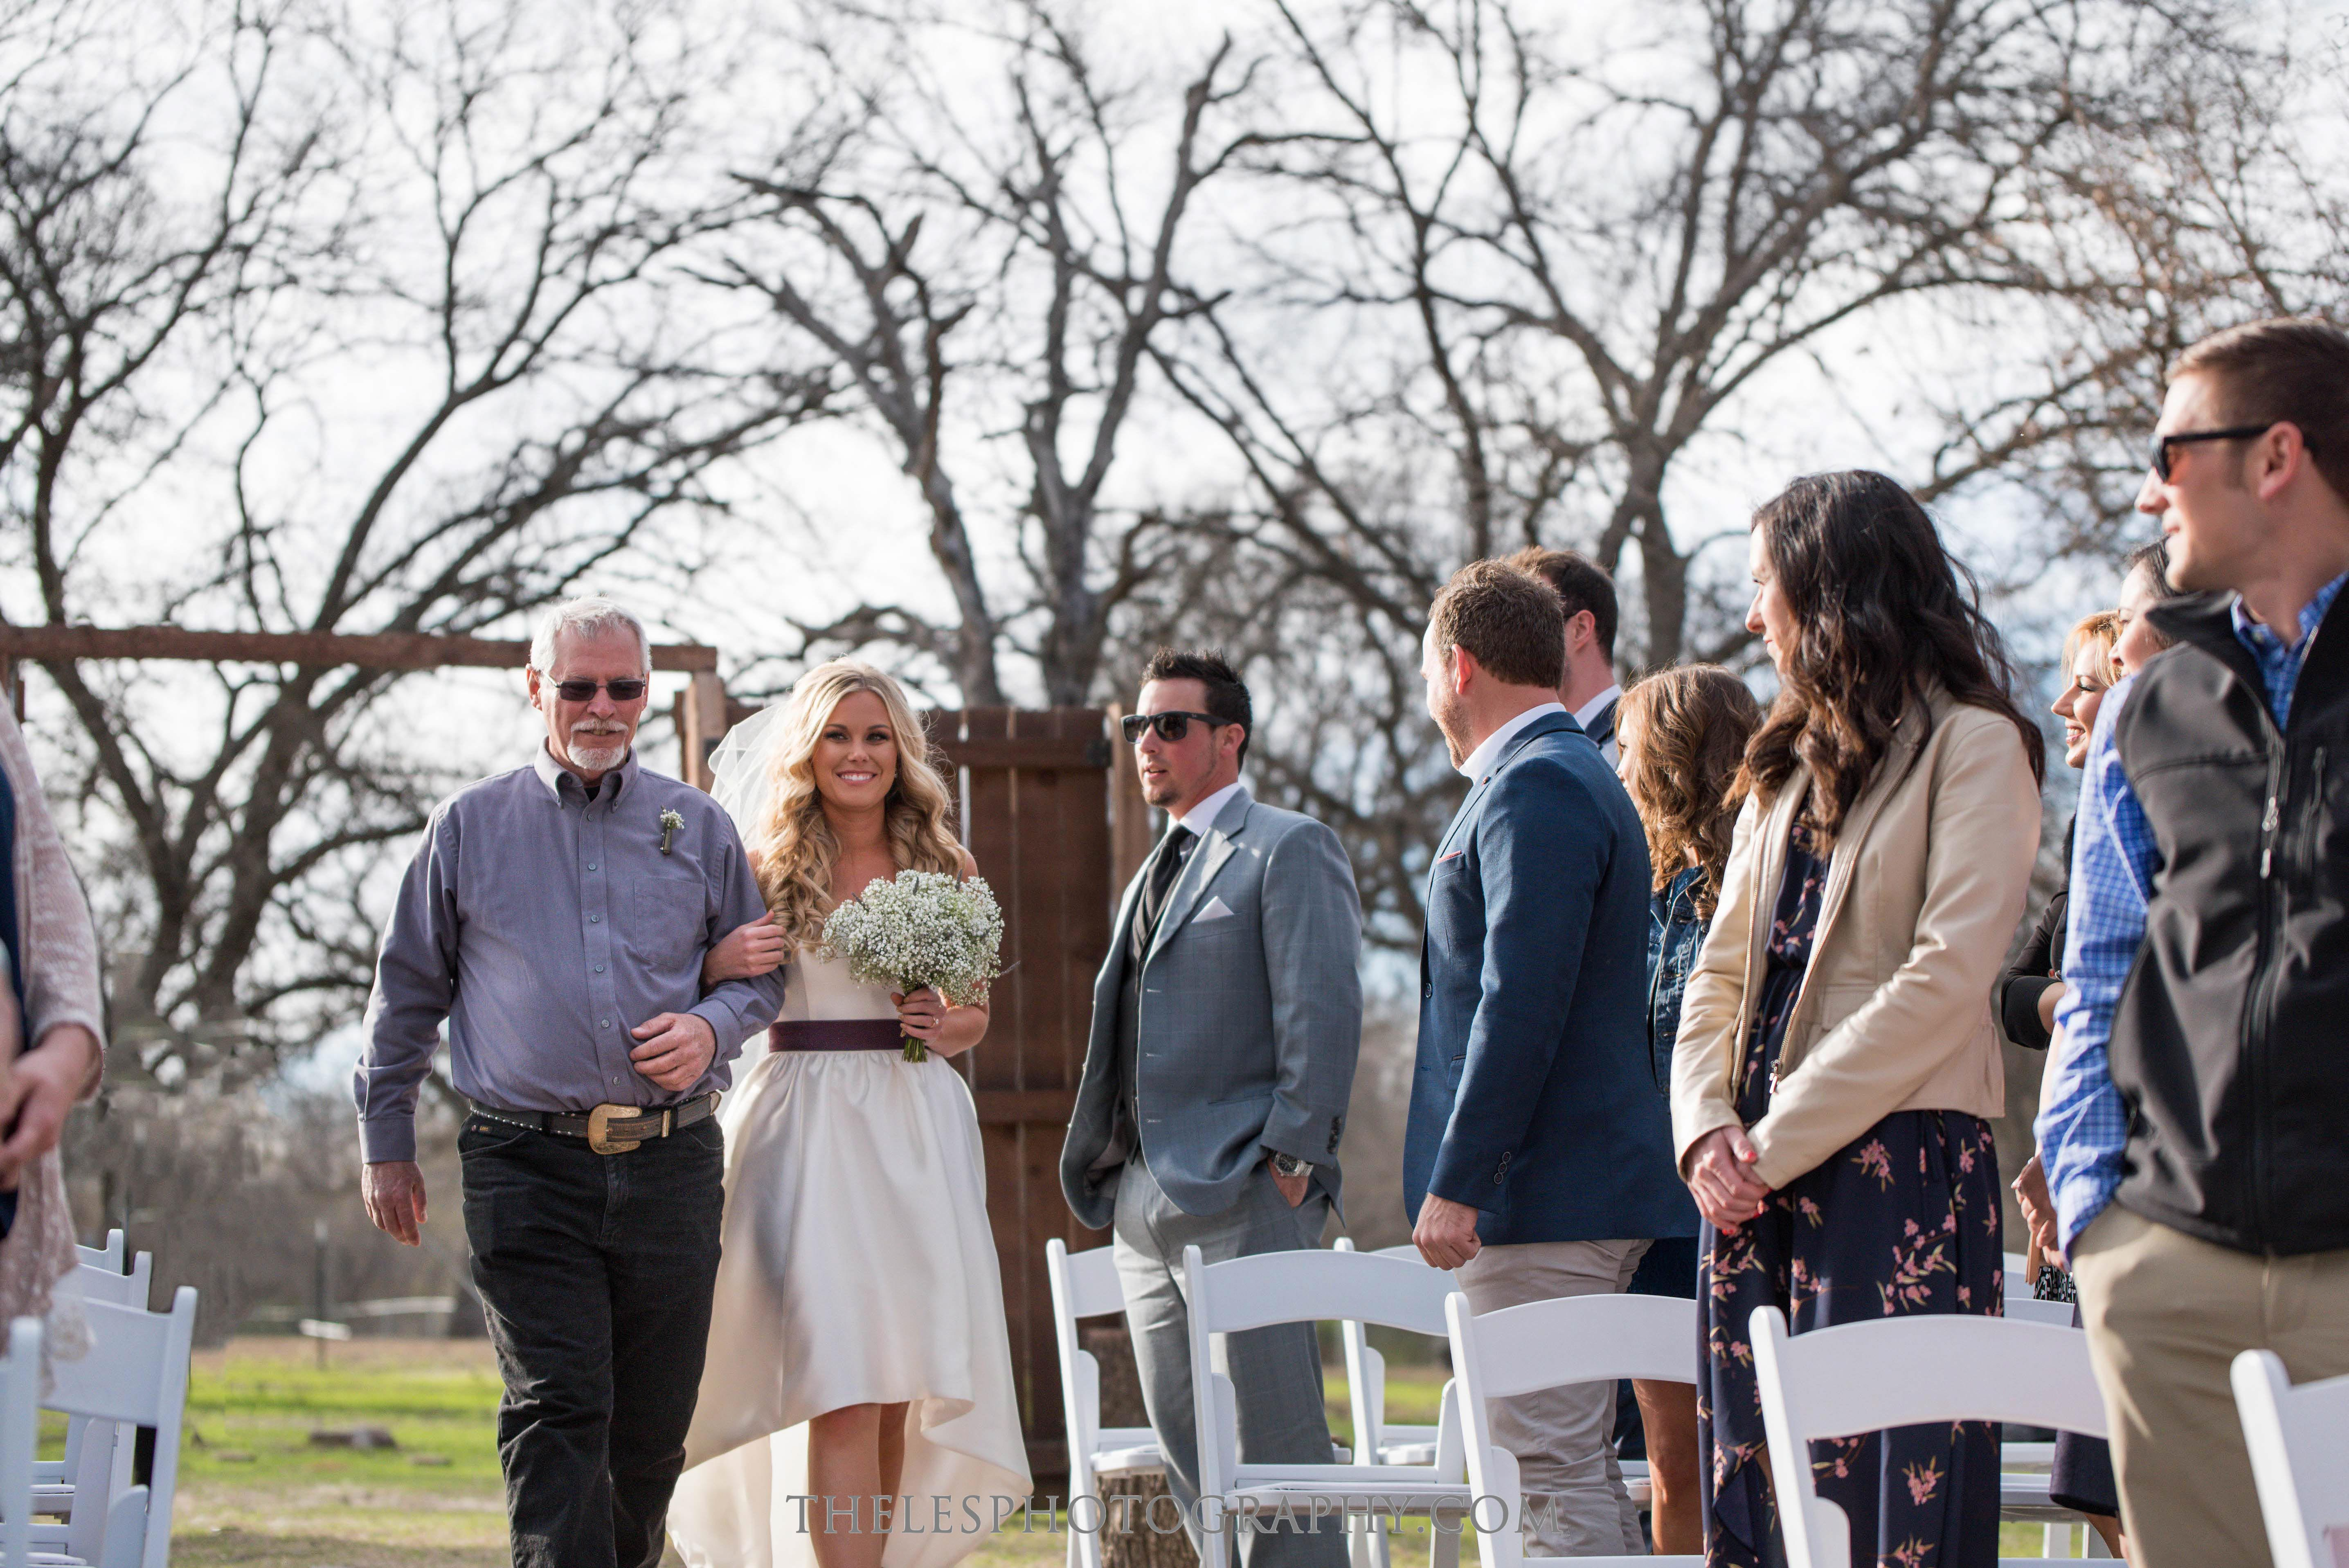 063 Dallas Wedding Photography - Photographer - The Les Photography - Fort Country Memories Wedding